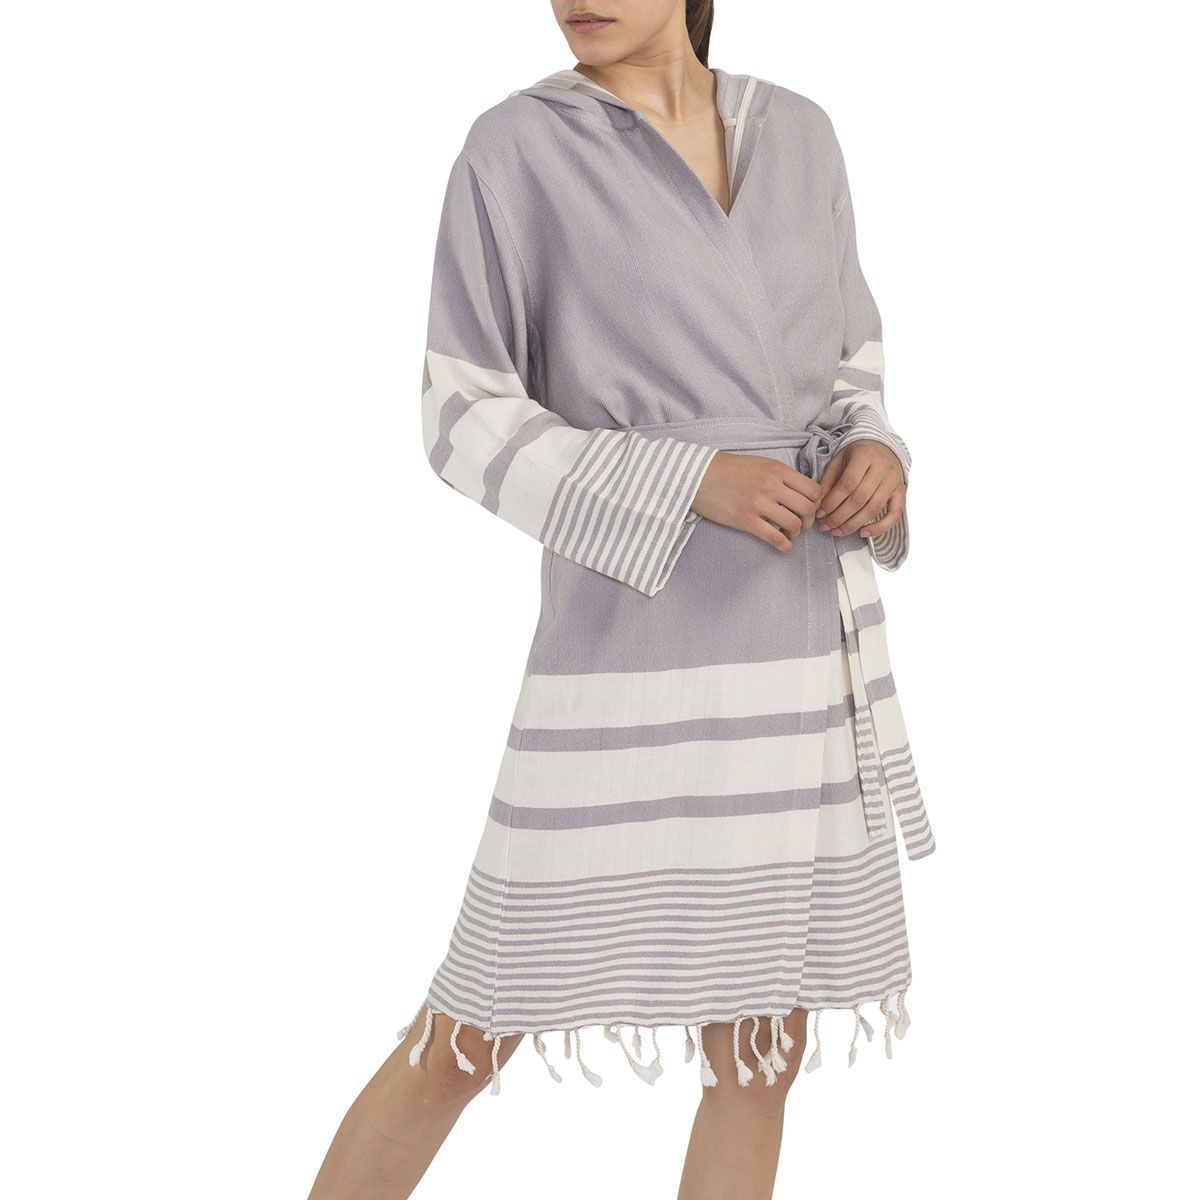 Bathrobe Tabiat with hood - Light Grey